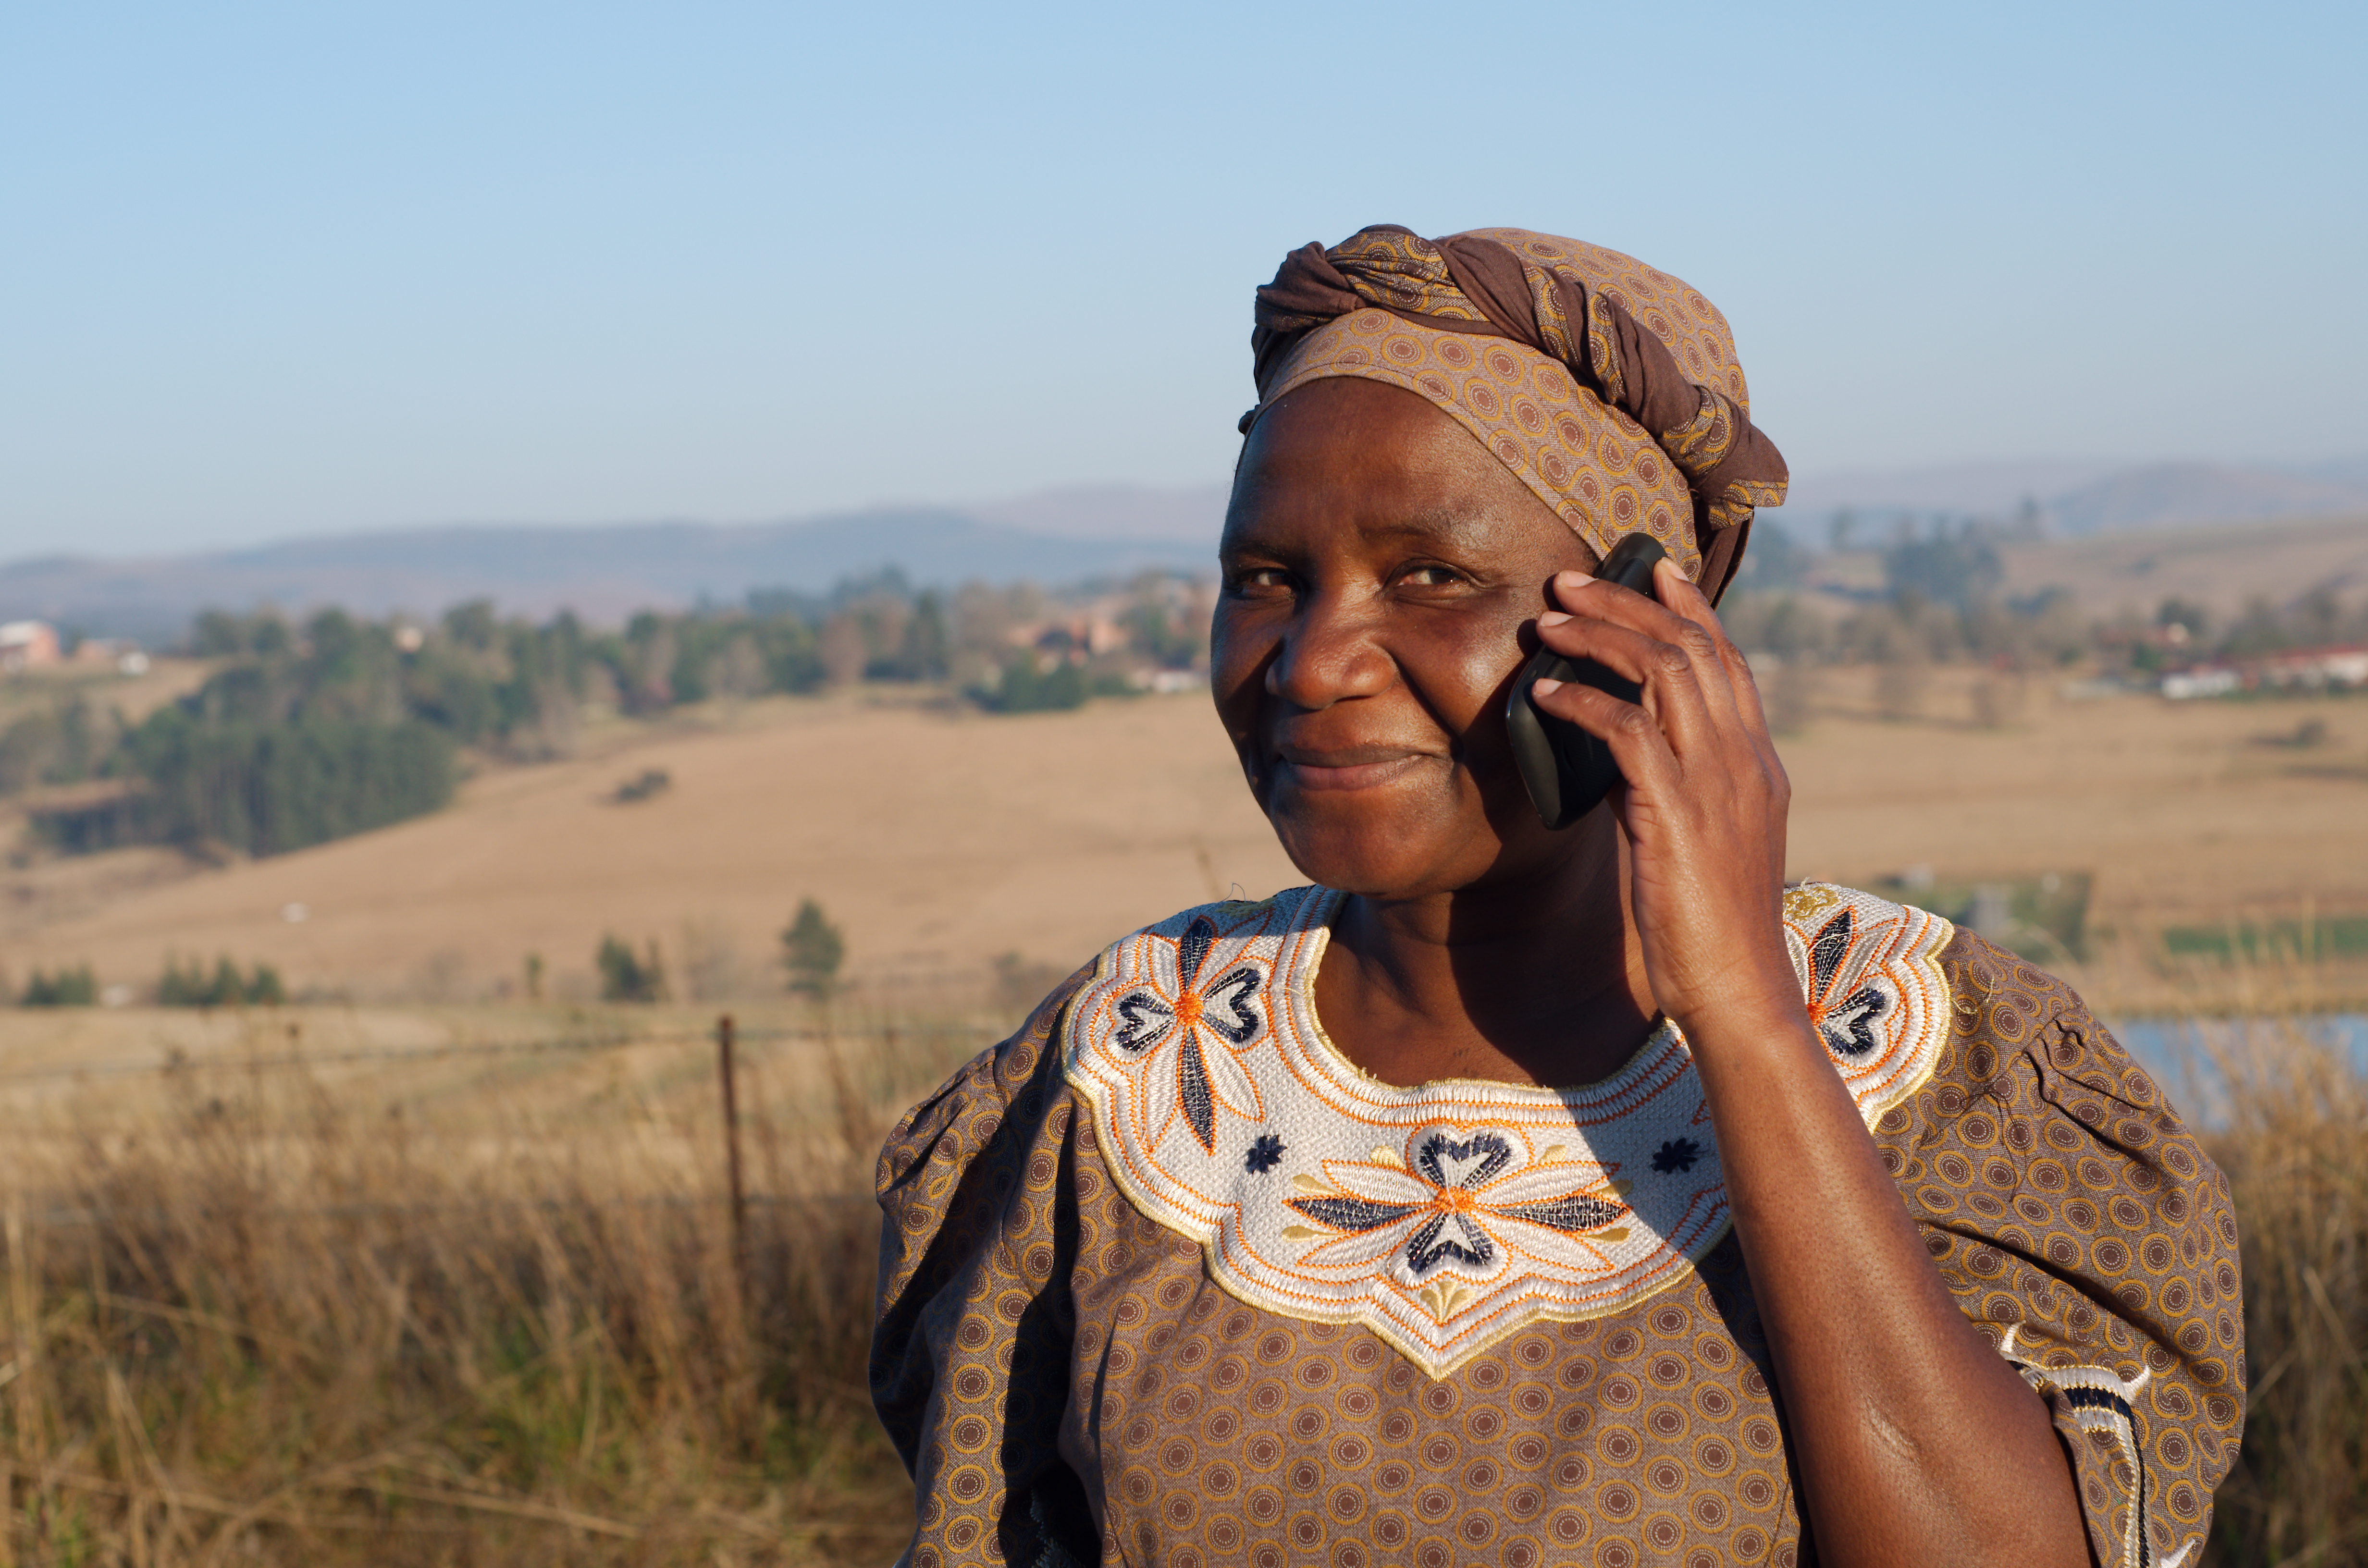 Woman on mobile phone © Photo Africa / Shutterstock